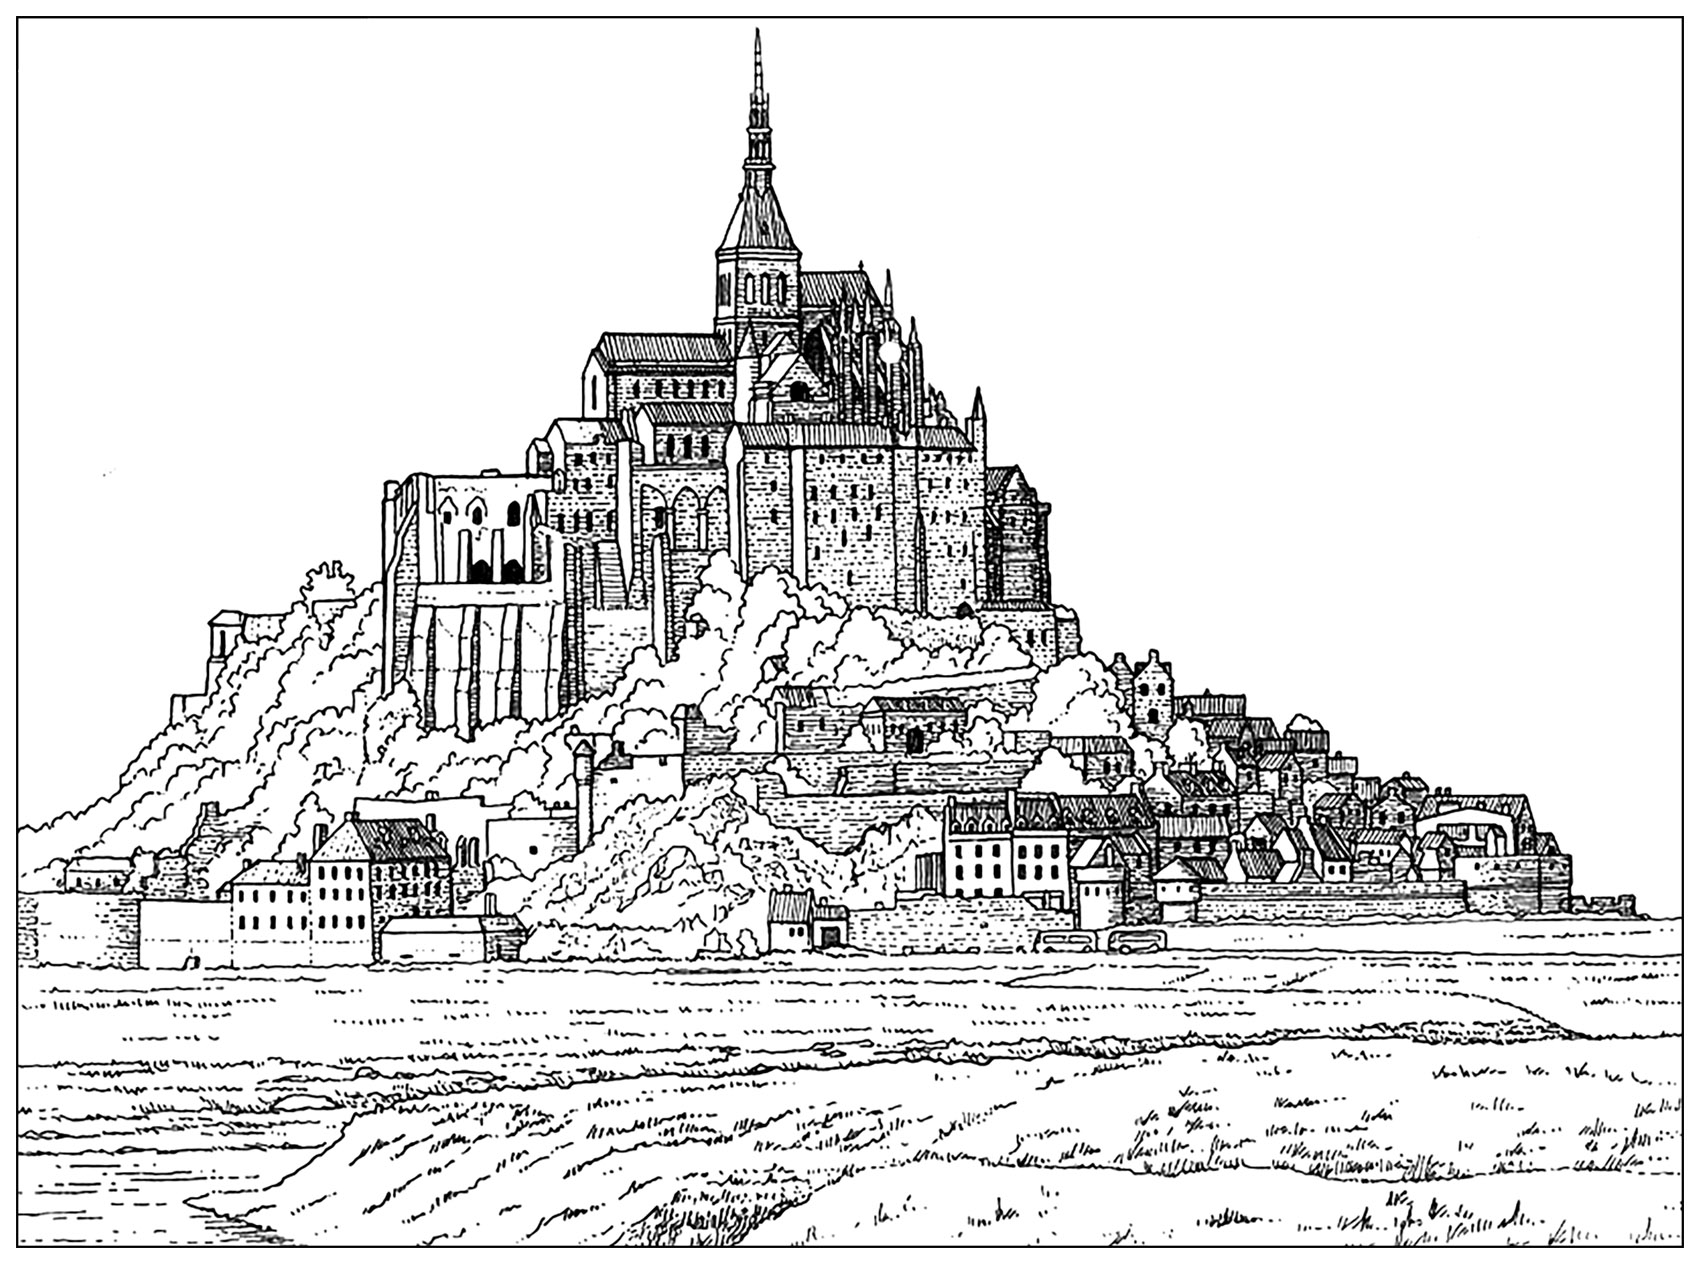 Mont saint michel france architecture et habitation coloriages difficiles - Architecture pour enfants ...